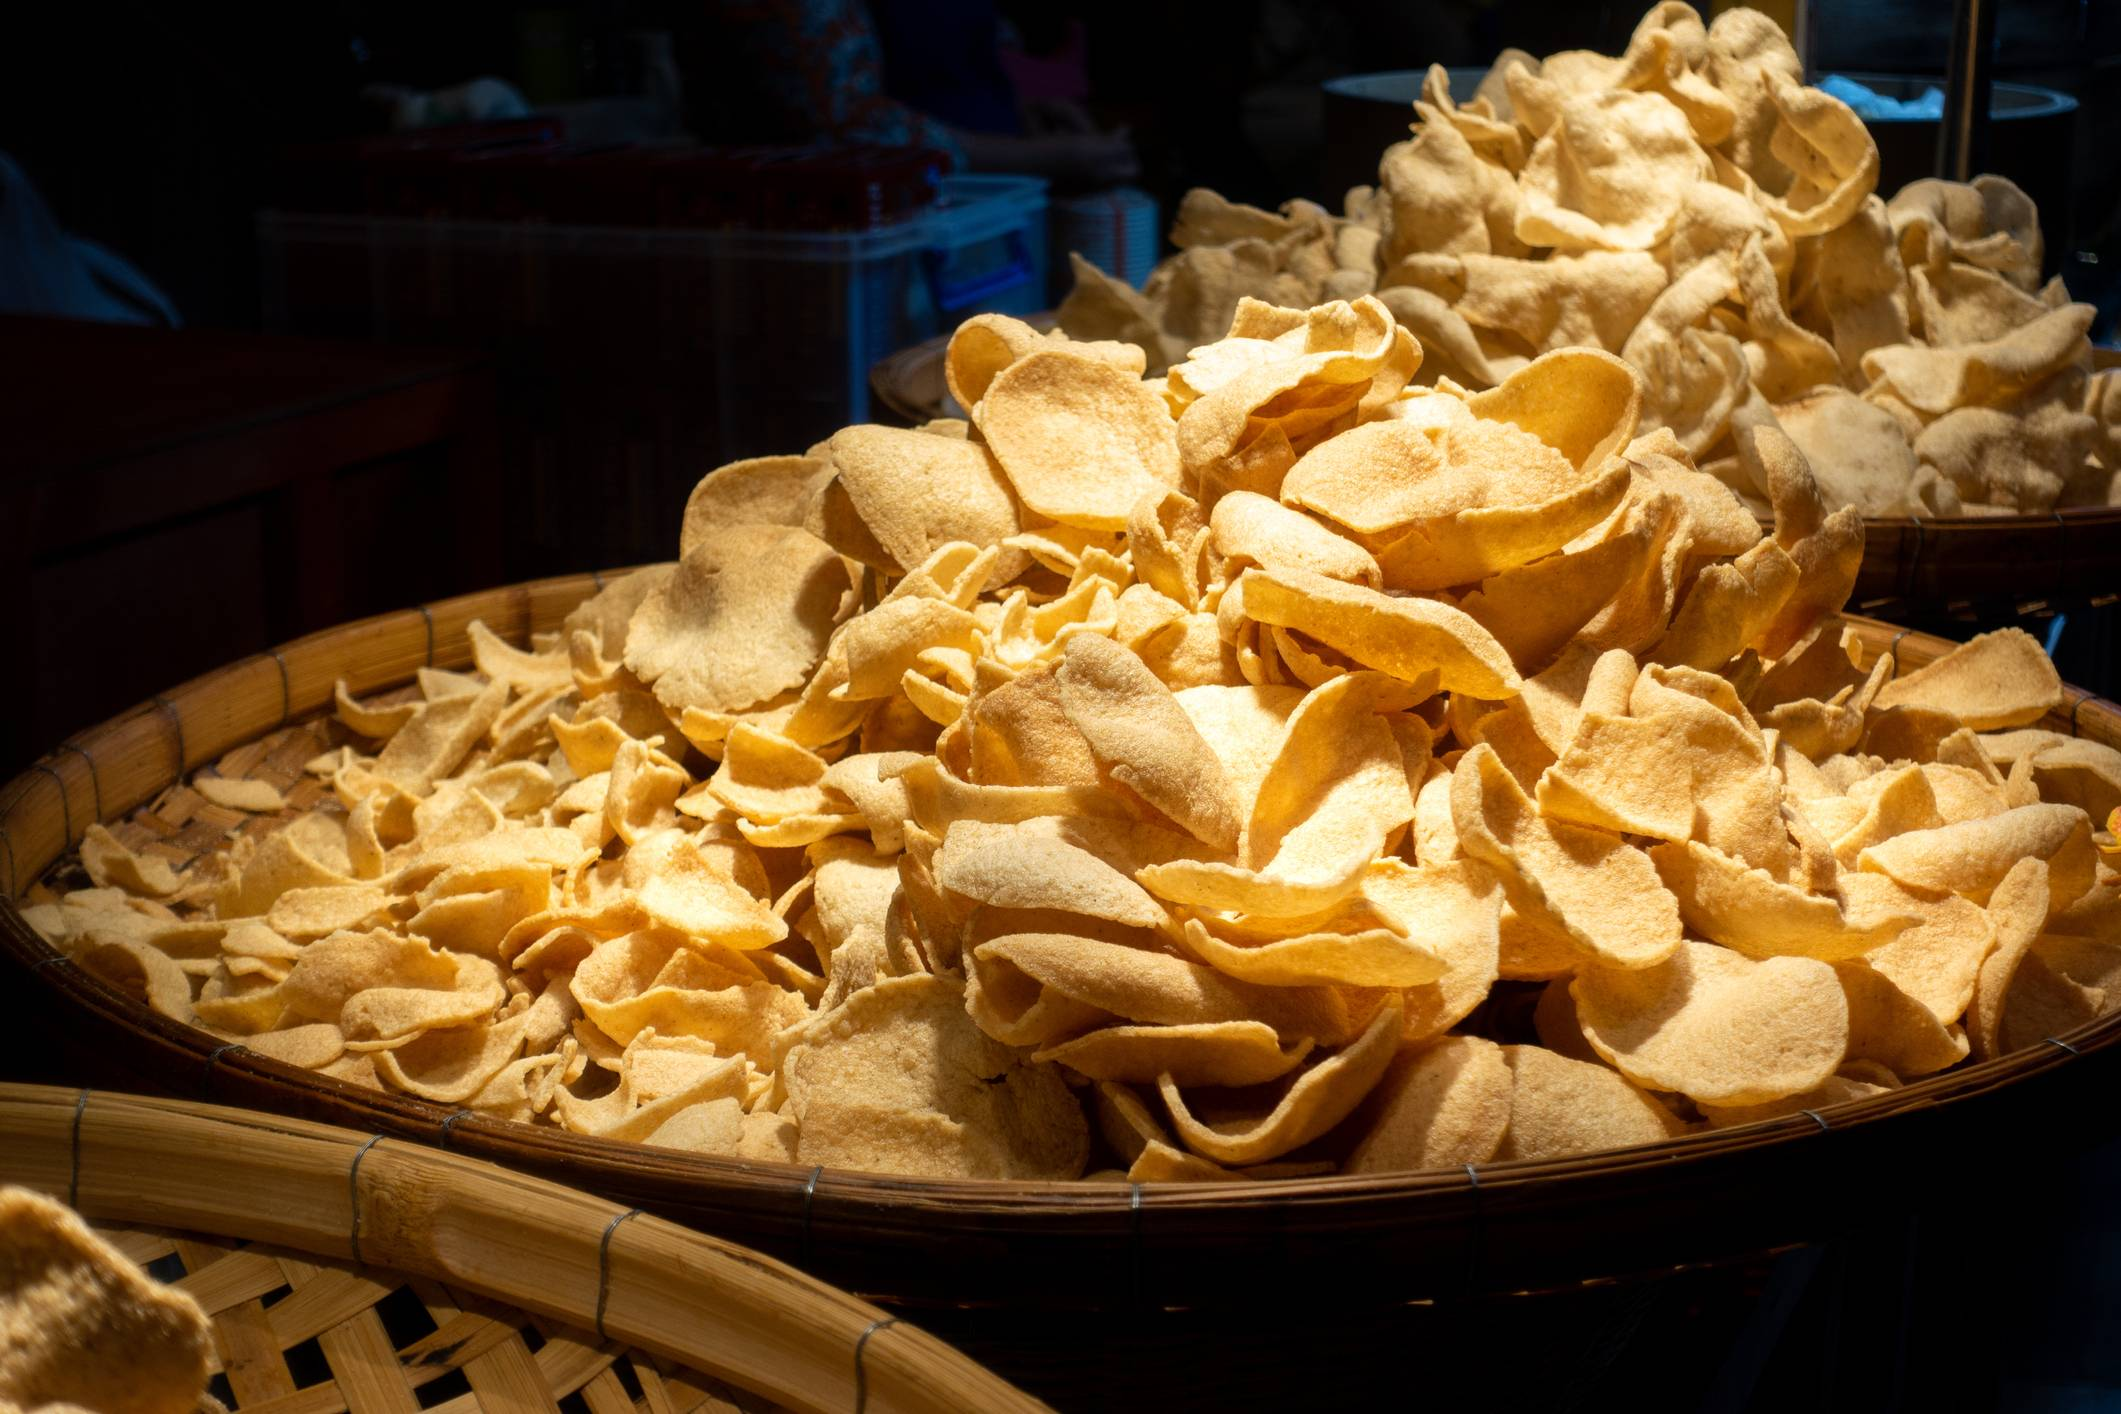 Pla nil chips, a processed product developed by Thailand's fish farmers | OAT_PHAWAT / ISTOCKPHOTO.COM